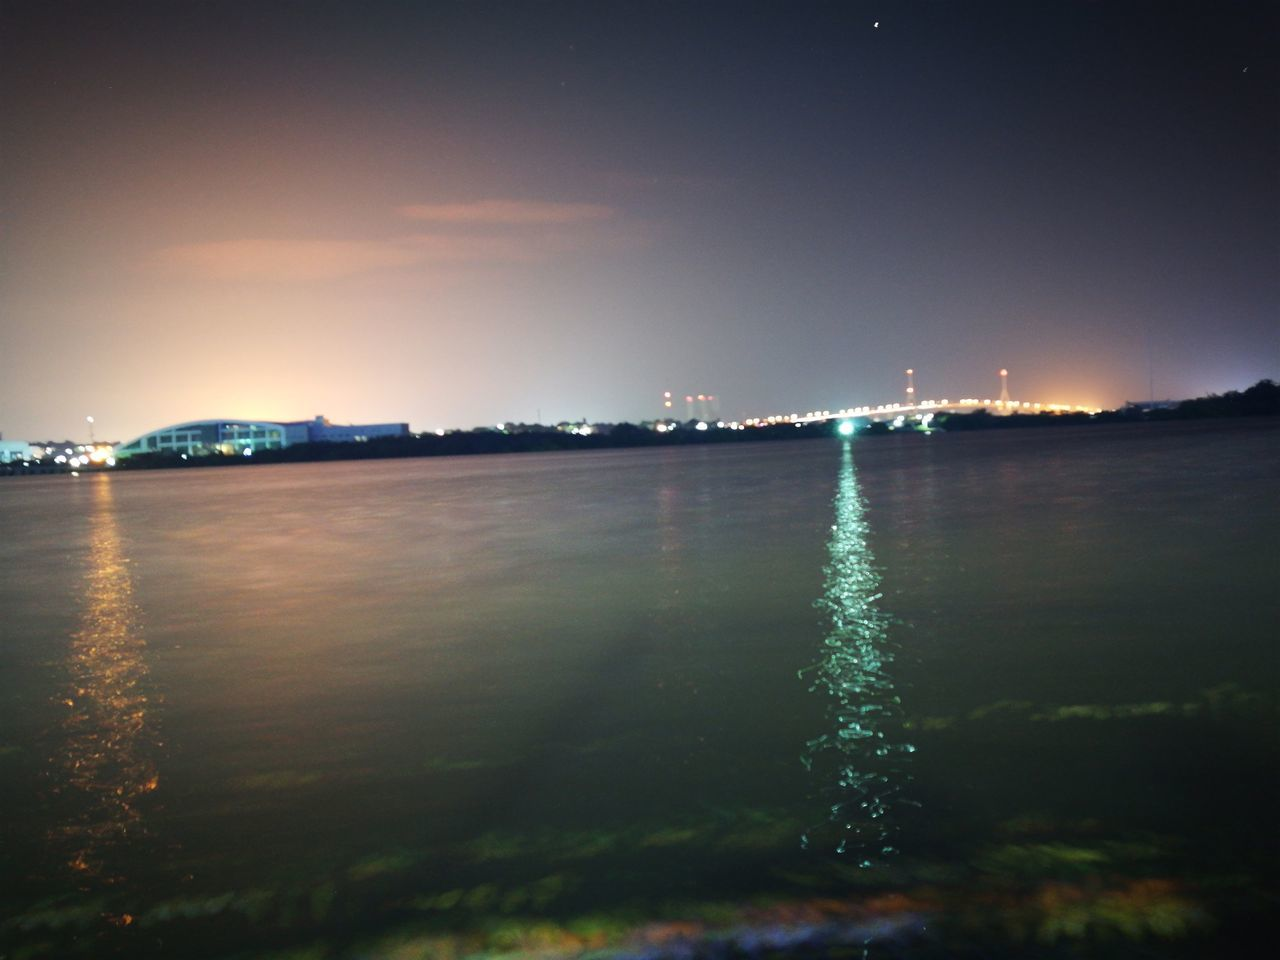 water, night, no people, sky, waterfront, illuminated, nature, outdoors, sunset, architecture, beauty in nature, sea, building exterior, city